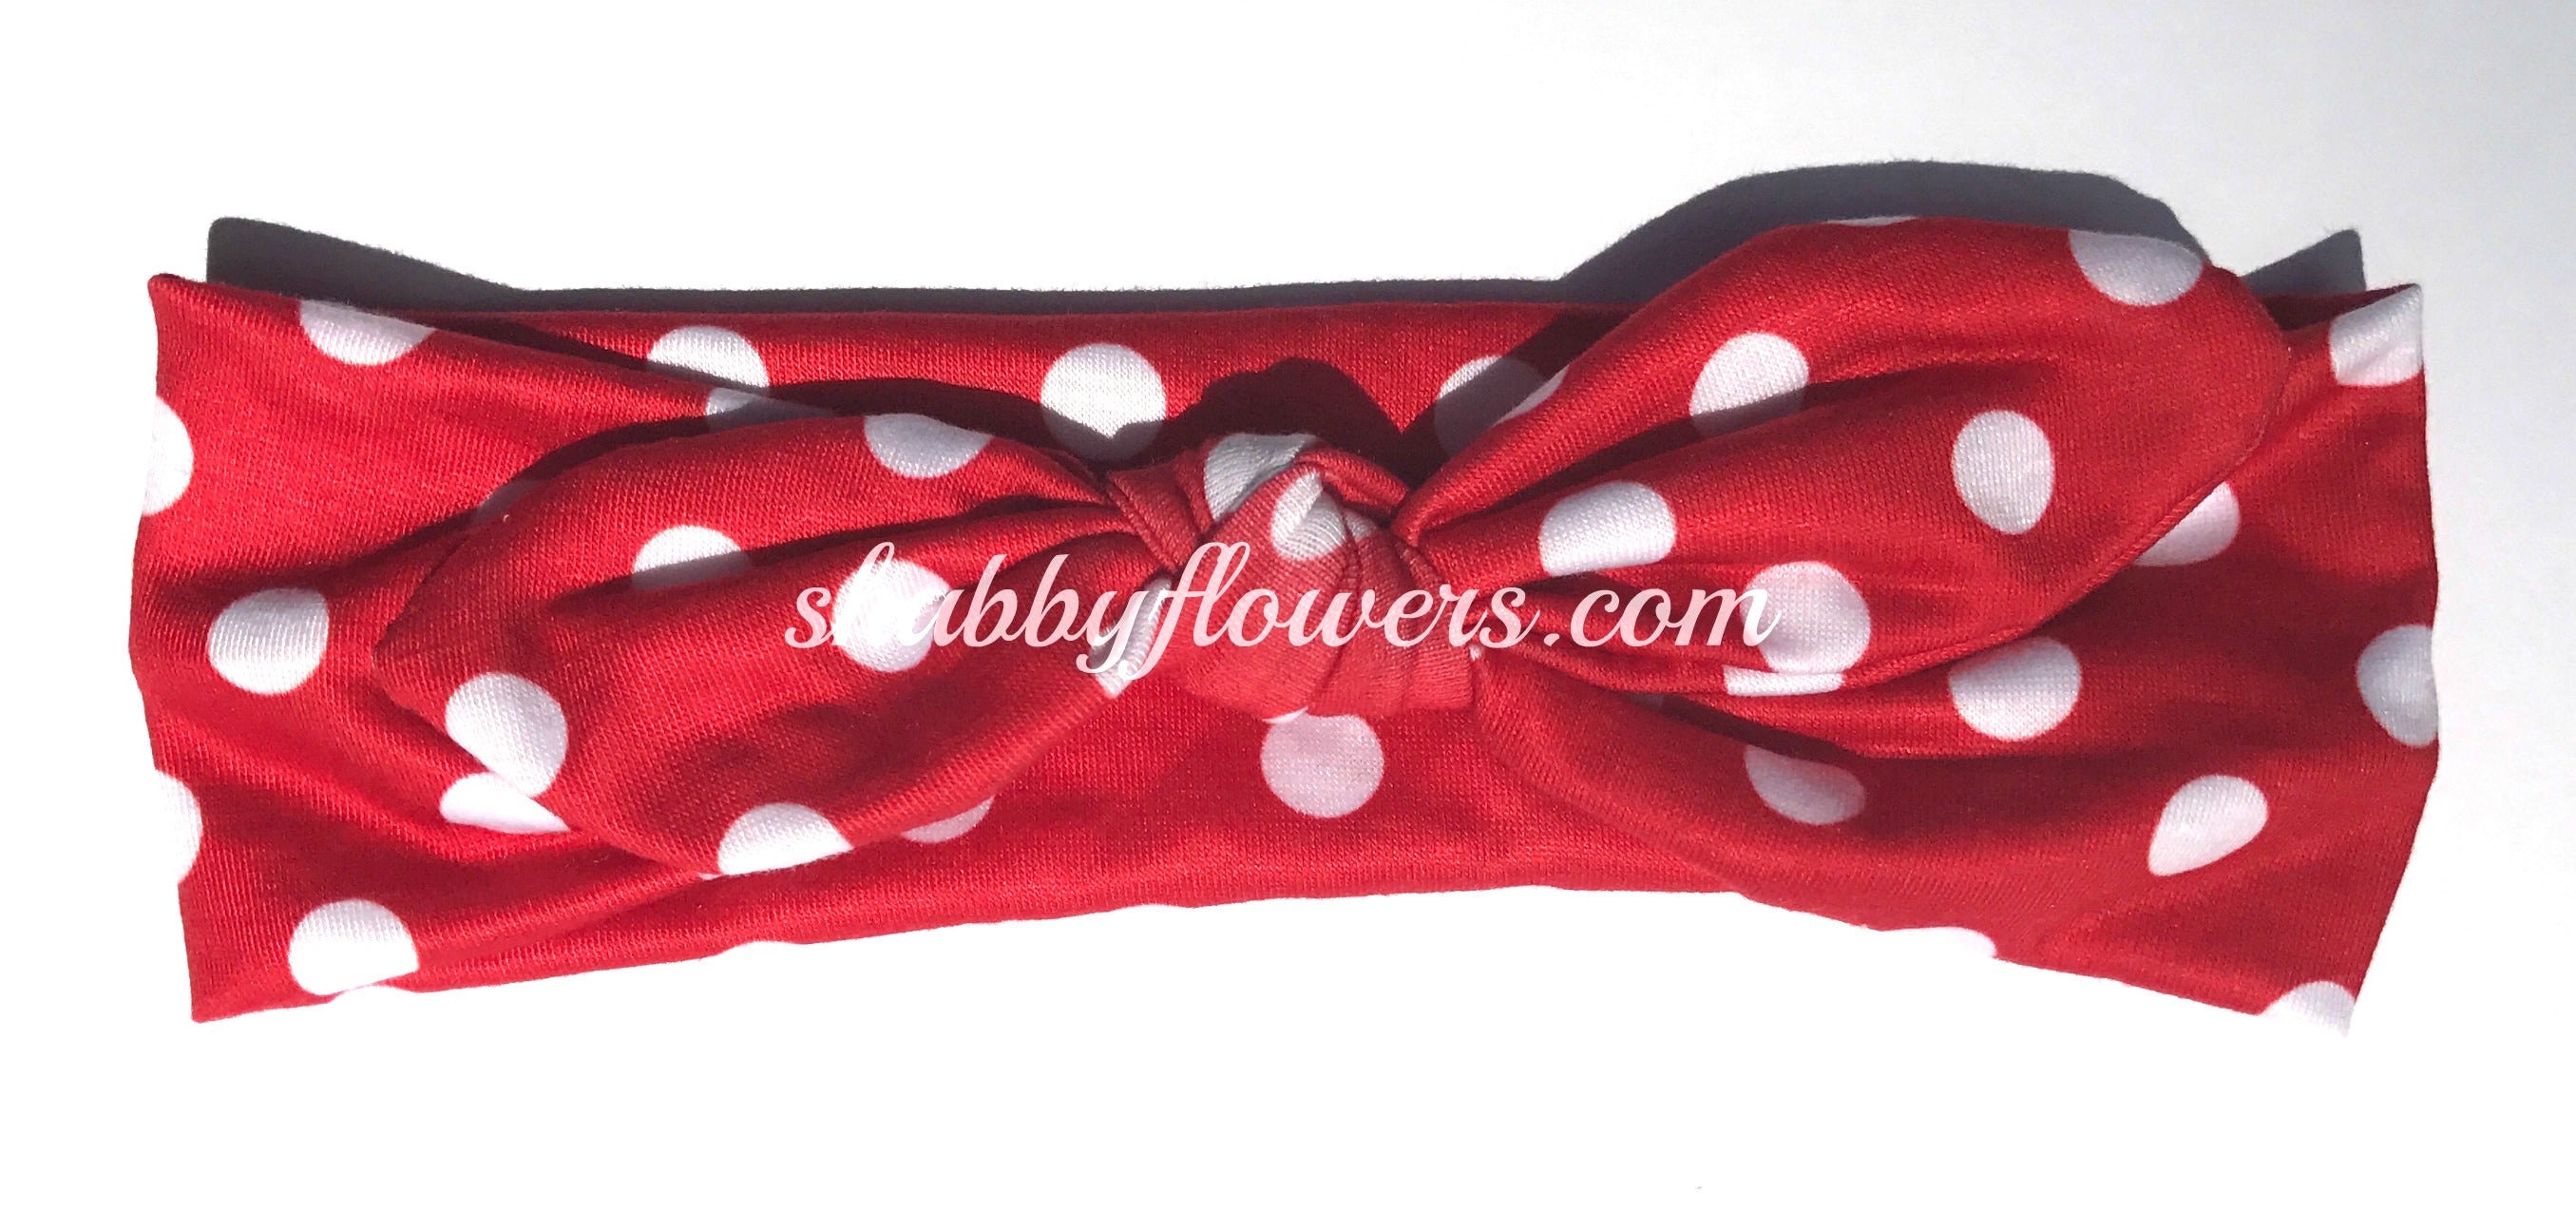 Knot Headband - White Dots on Red - Size Regular - shabbyflowers.com